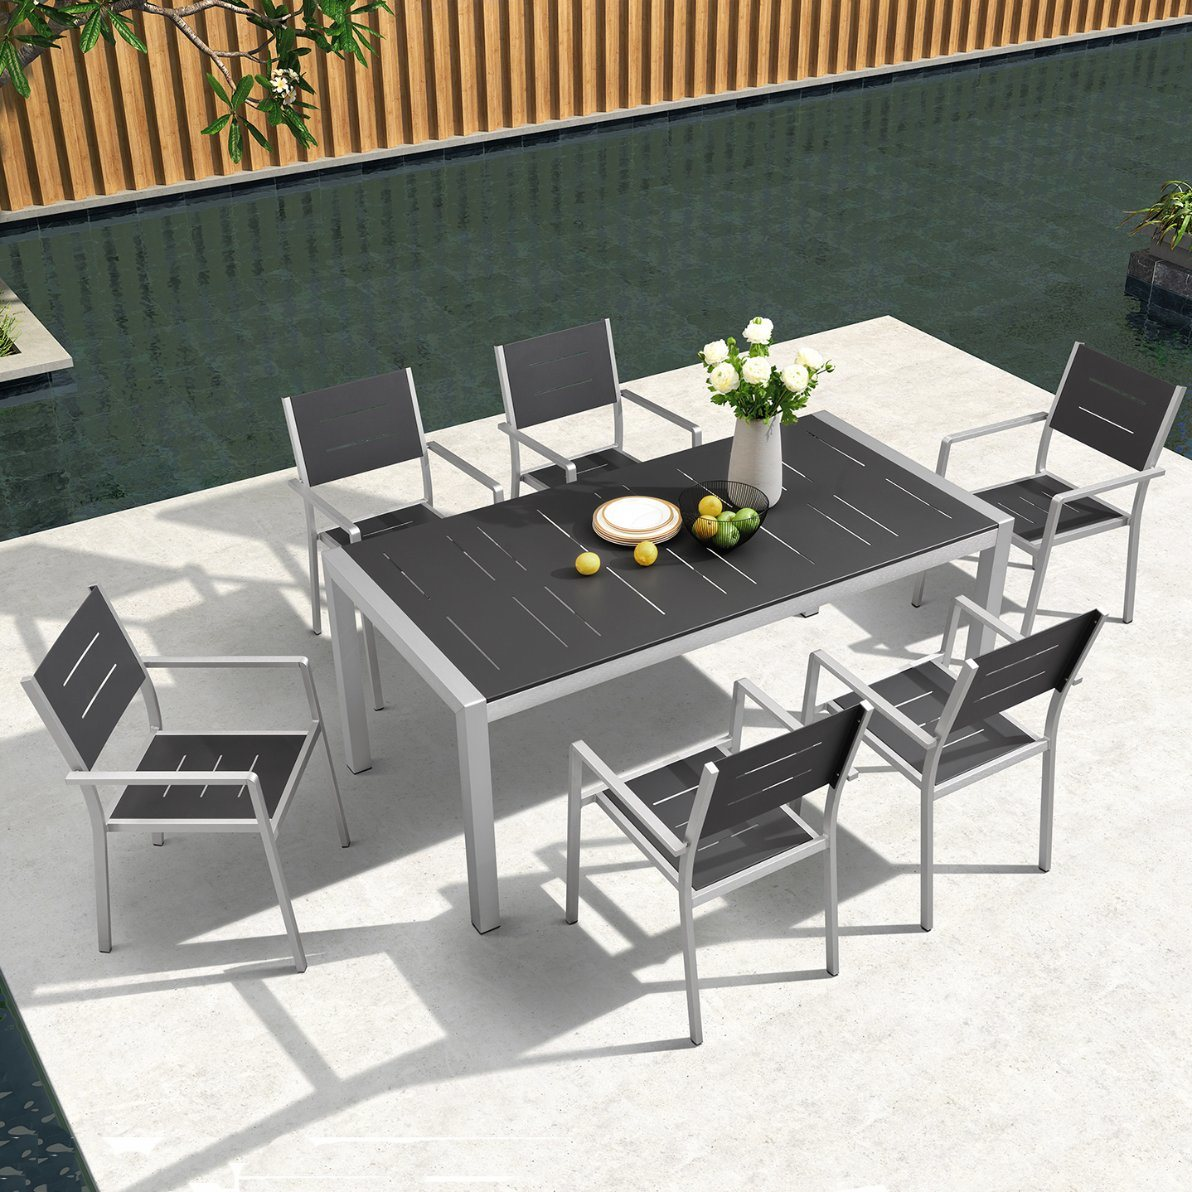 [Hot Item] Yard Dining Set Aluminum Patio Chair Outdoor Seating Dining Table